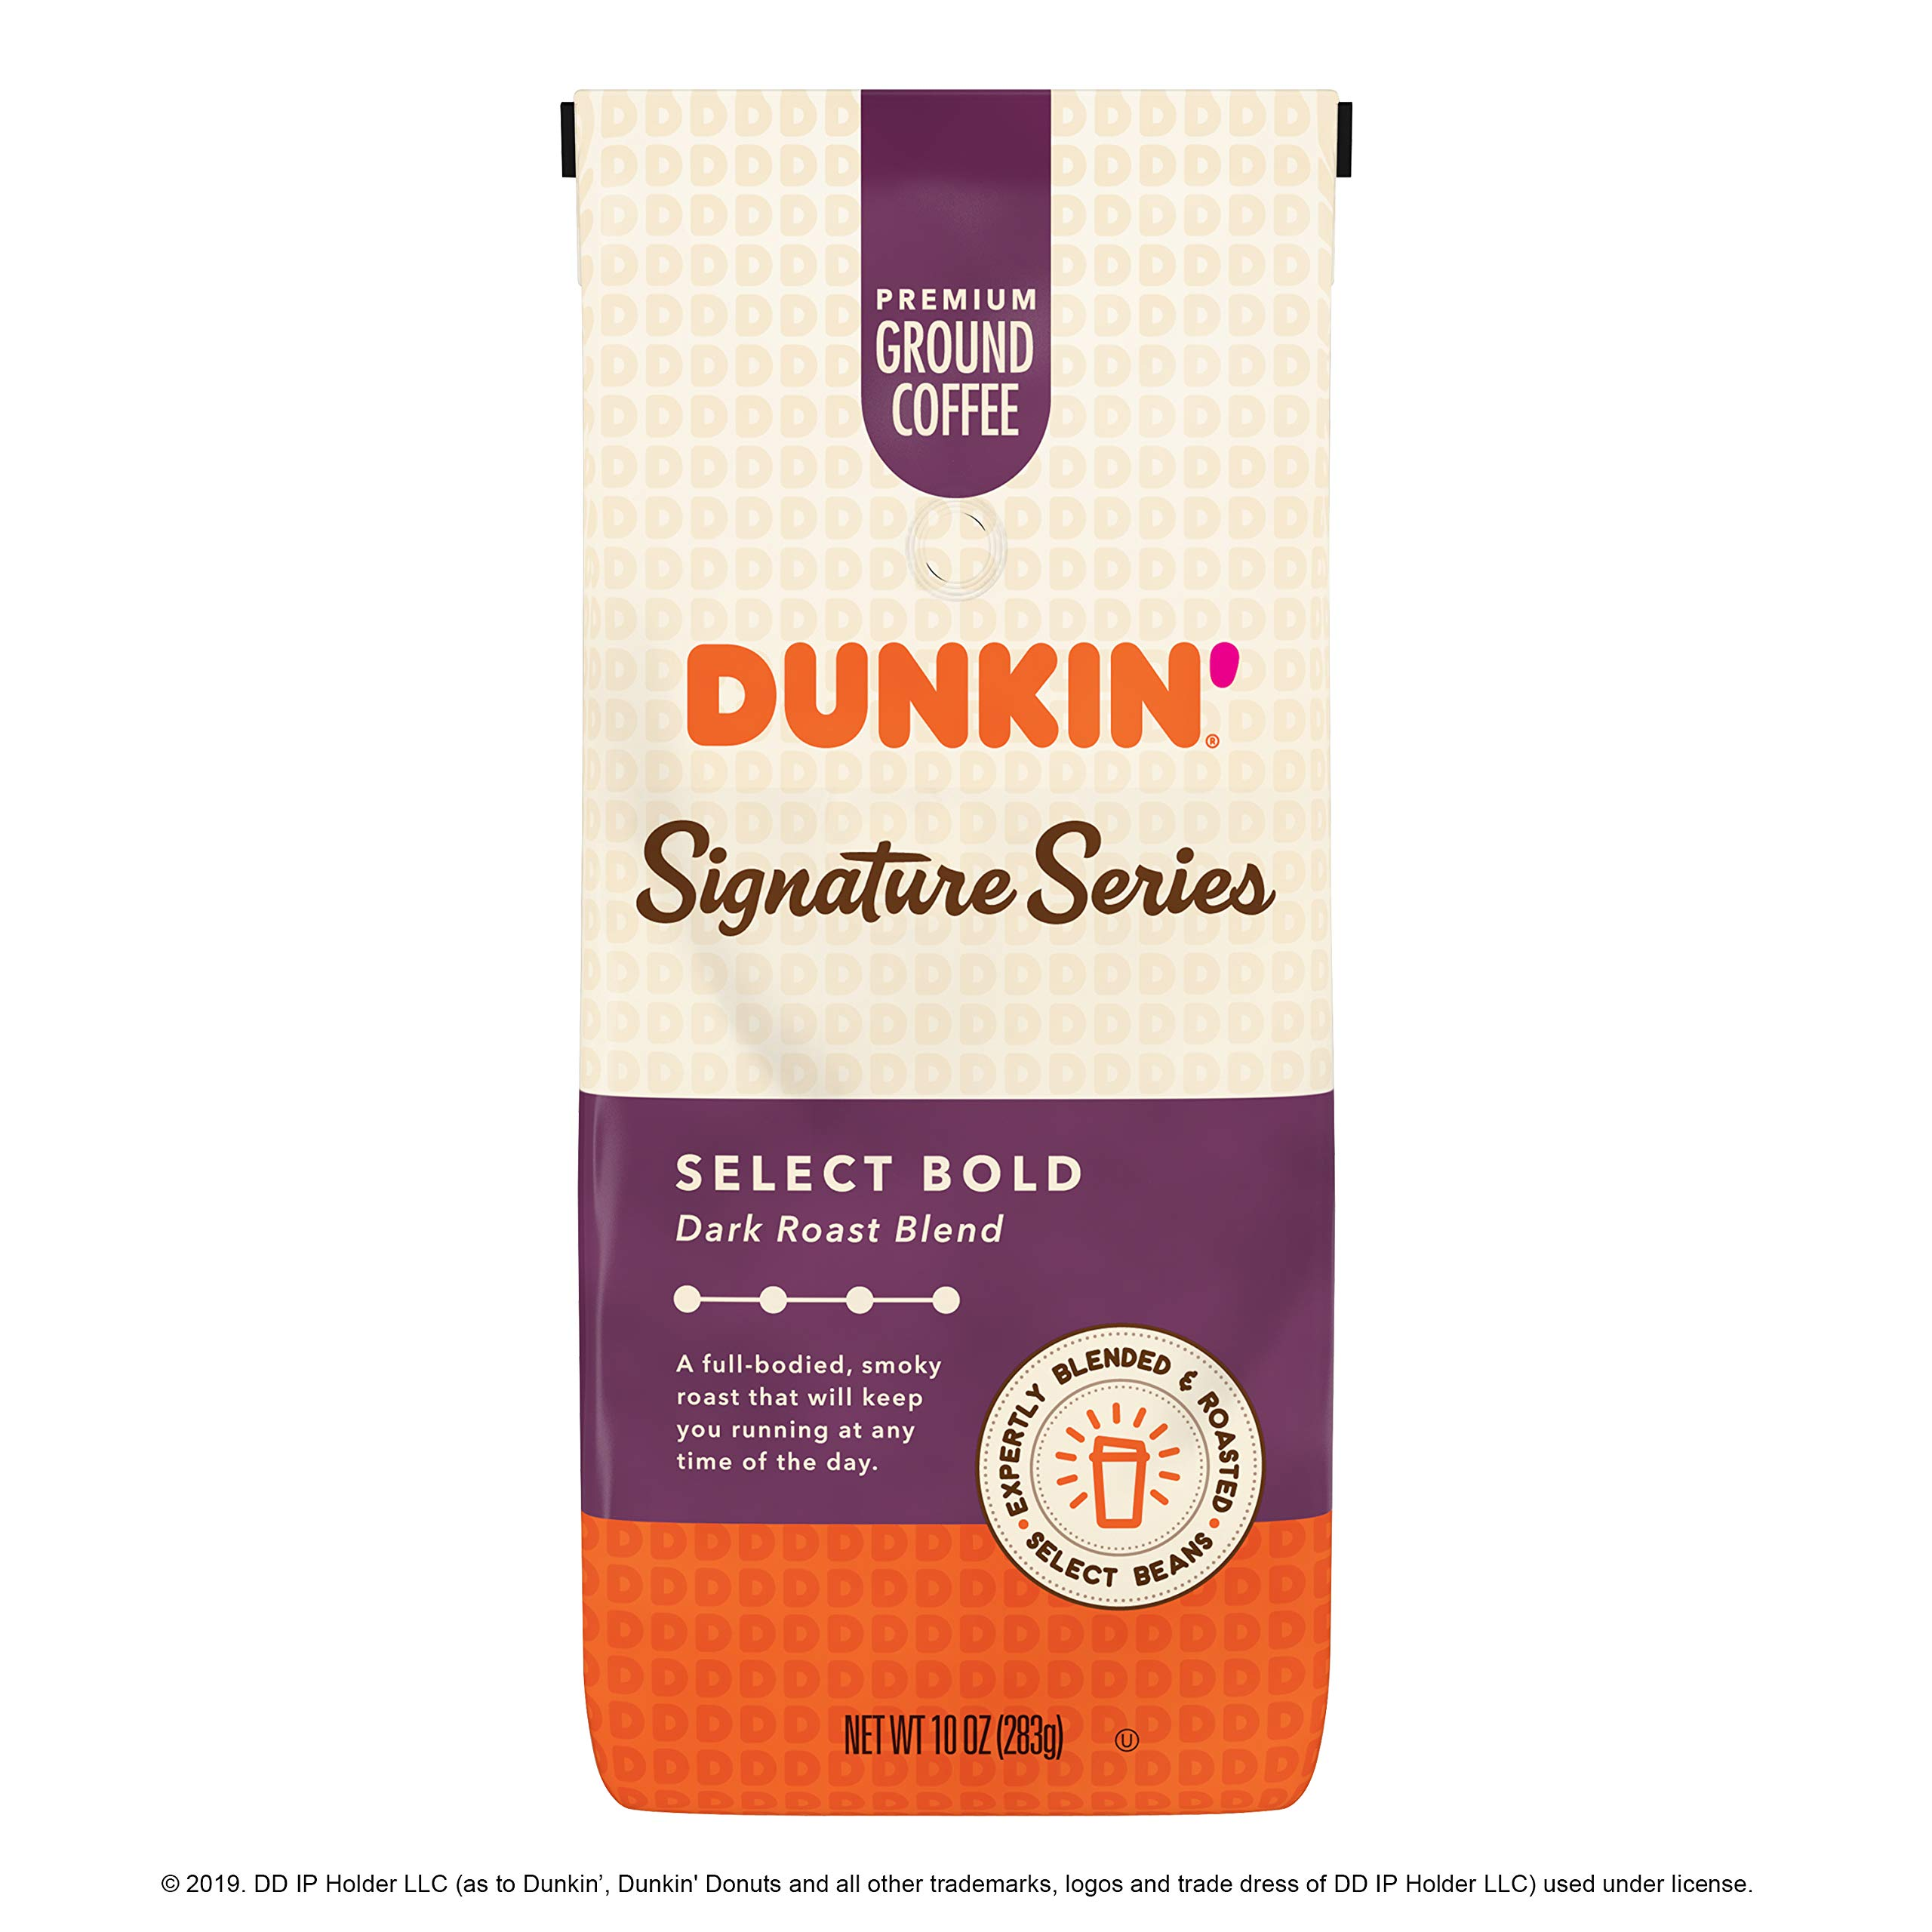 Dunkin' Donuts Signature Series Select Bold Dark Roast Blend Ground Coffee, 10 Ounces (Pack of 6)